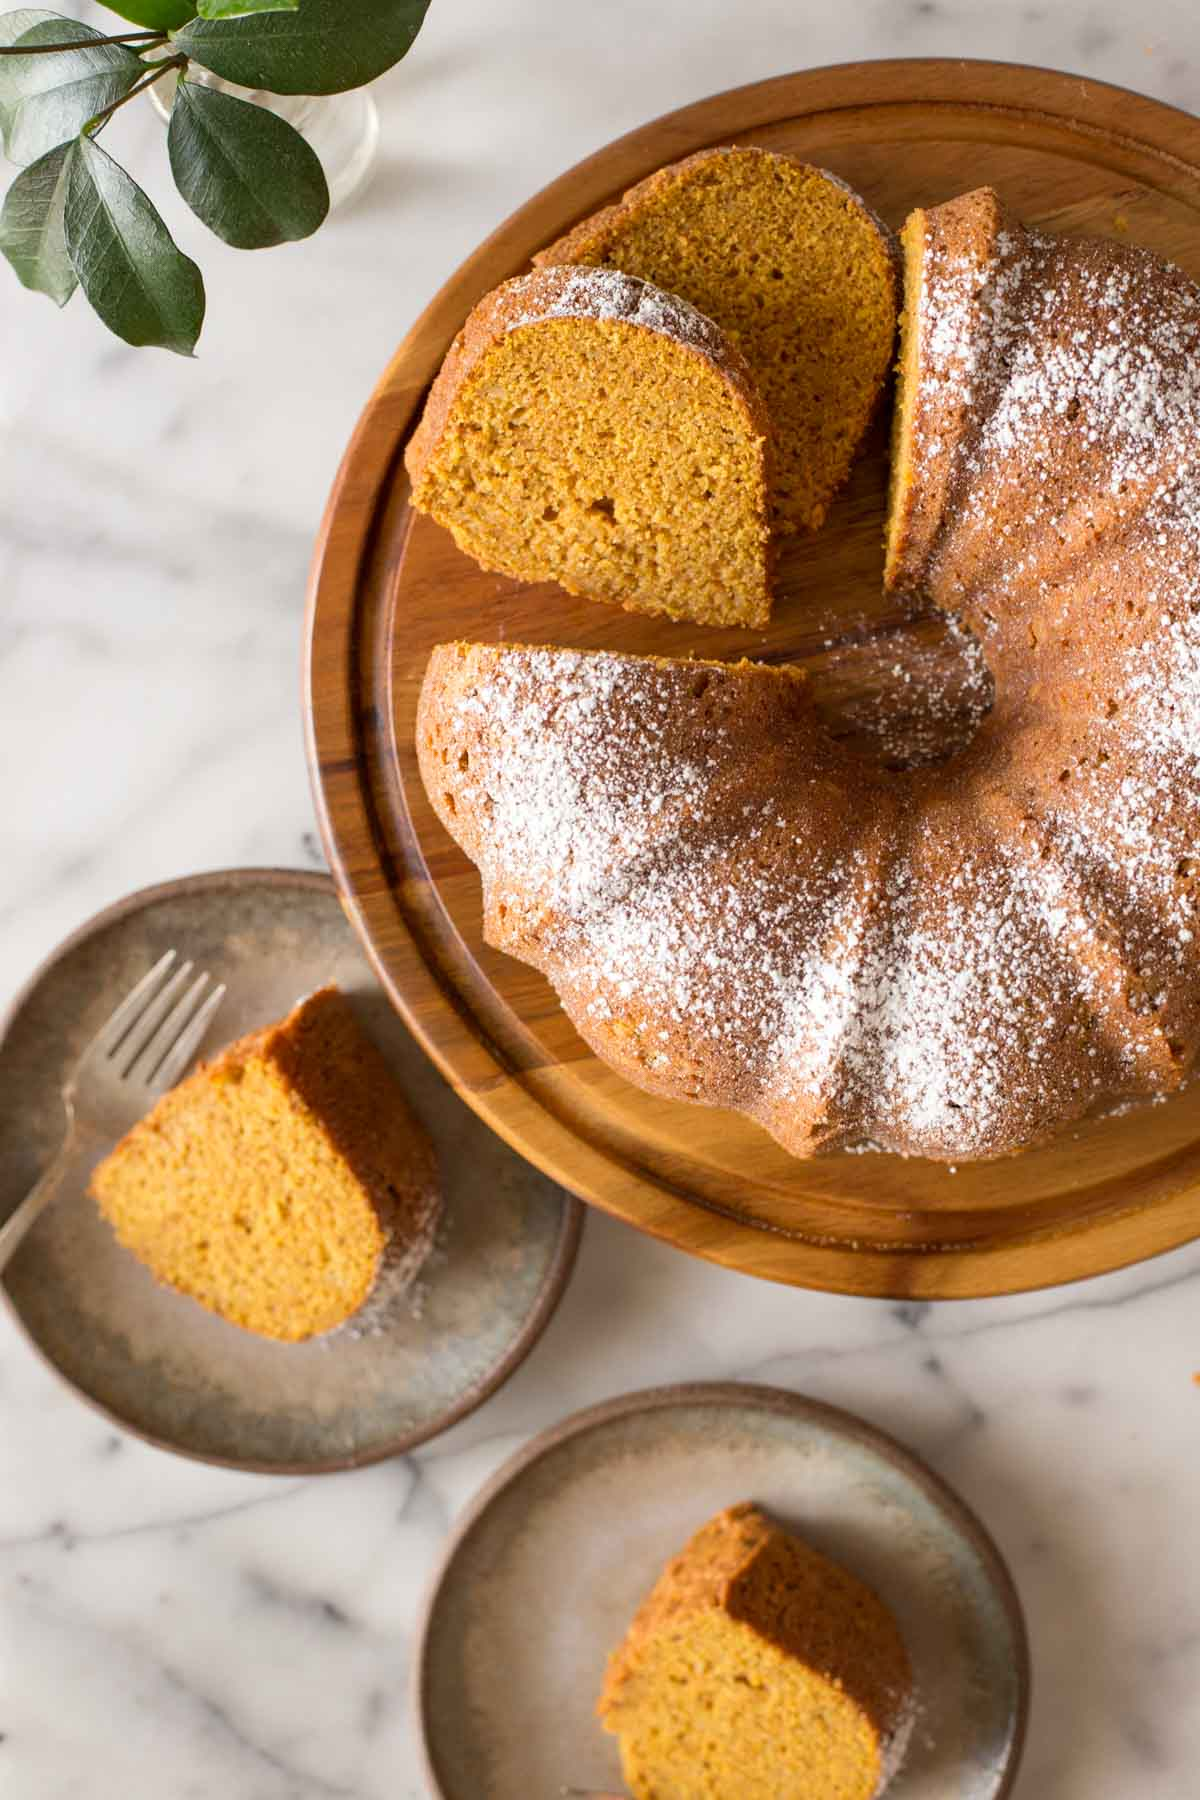 Overhead view of Apple Pumpkin Cake on a wooden cake stand.